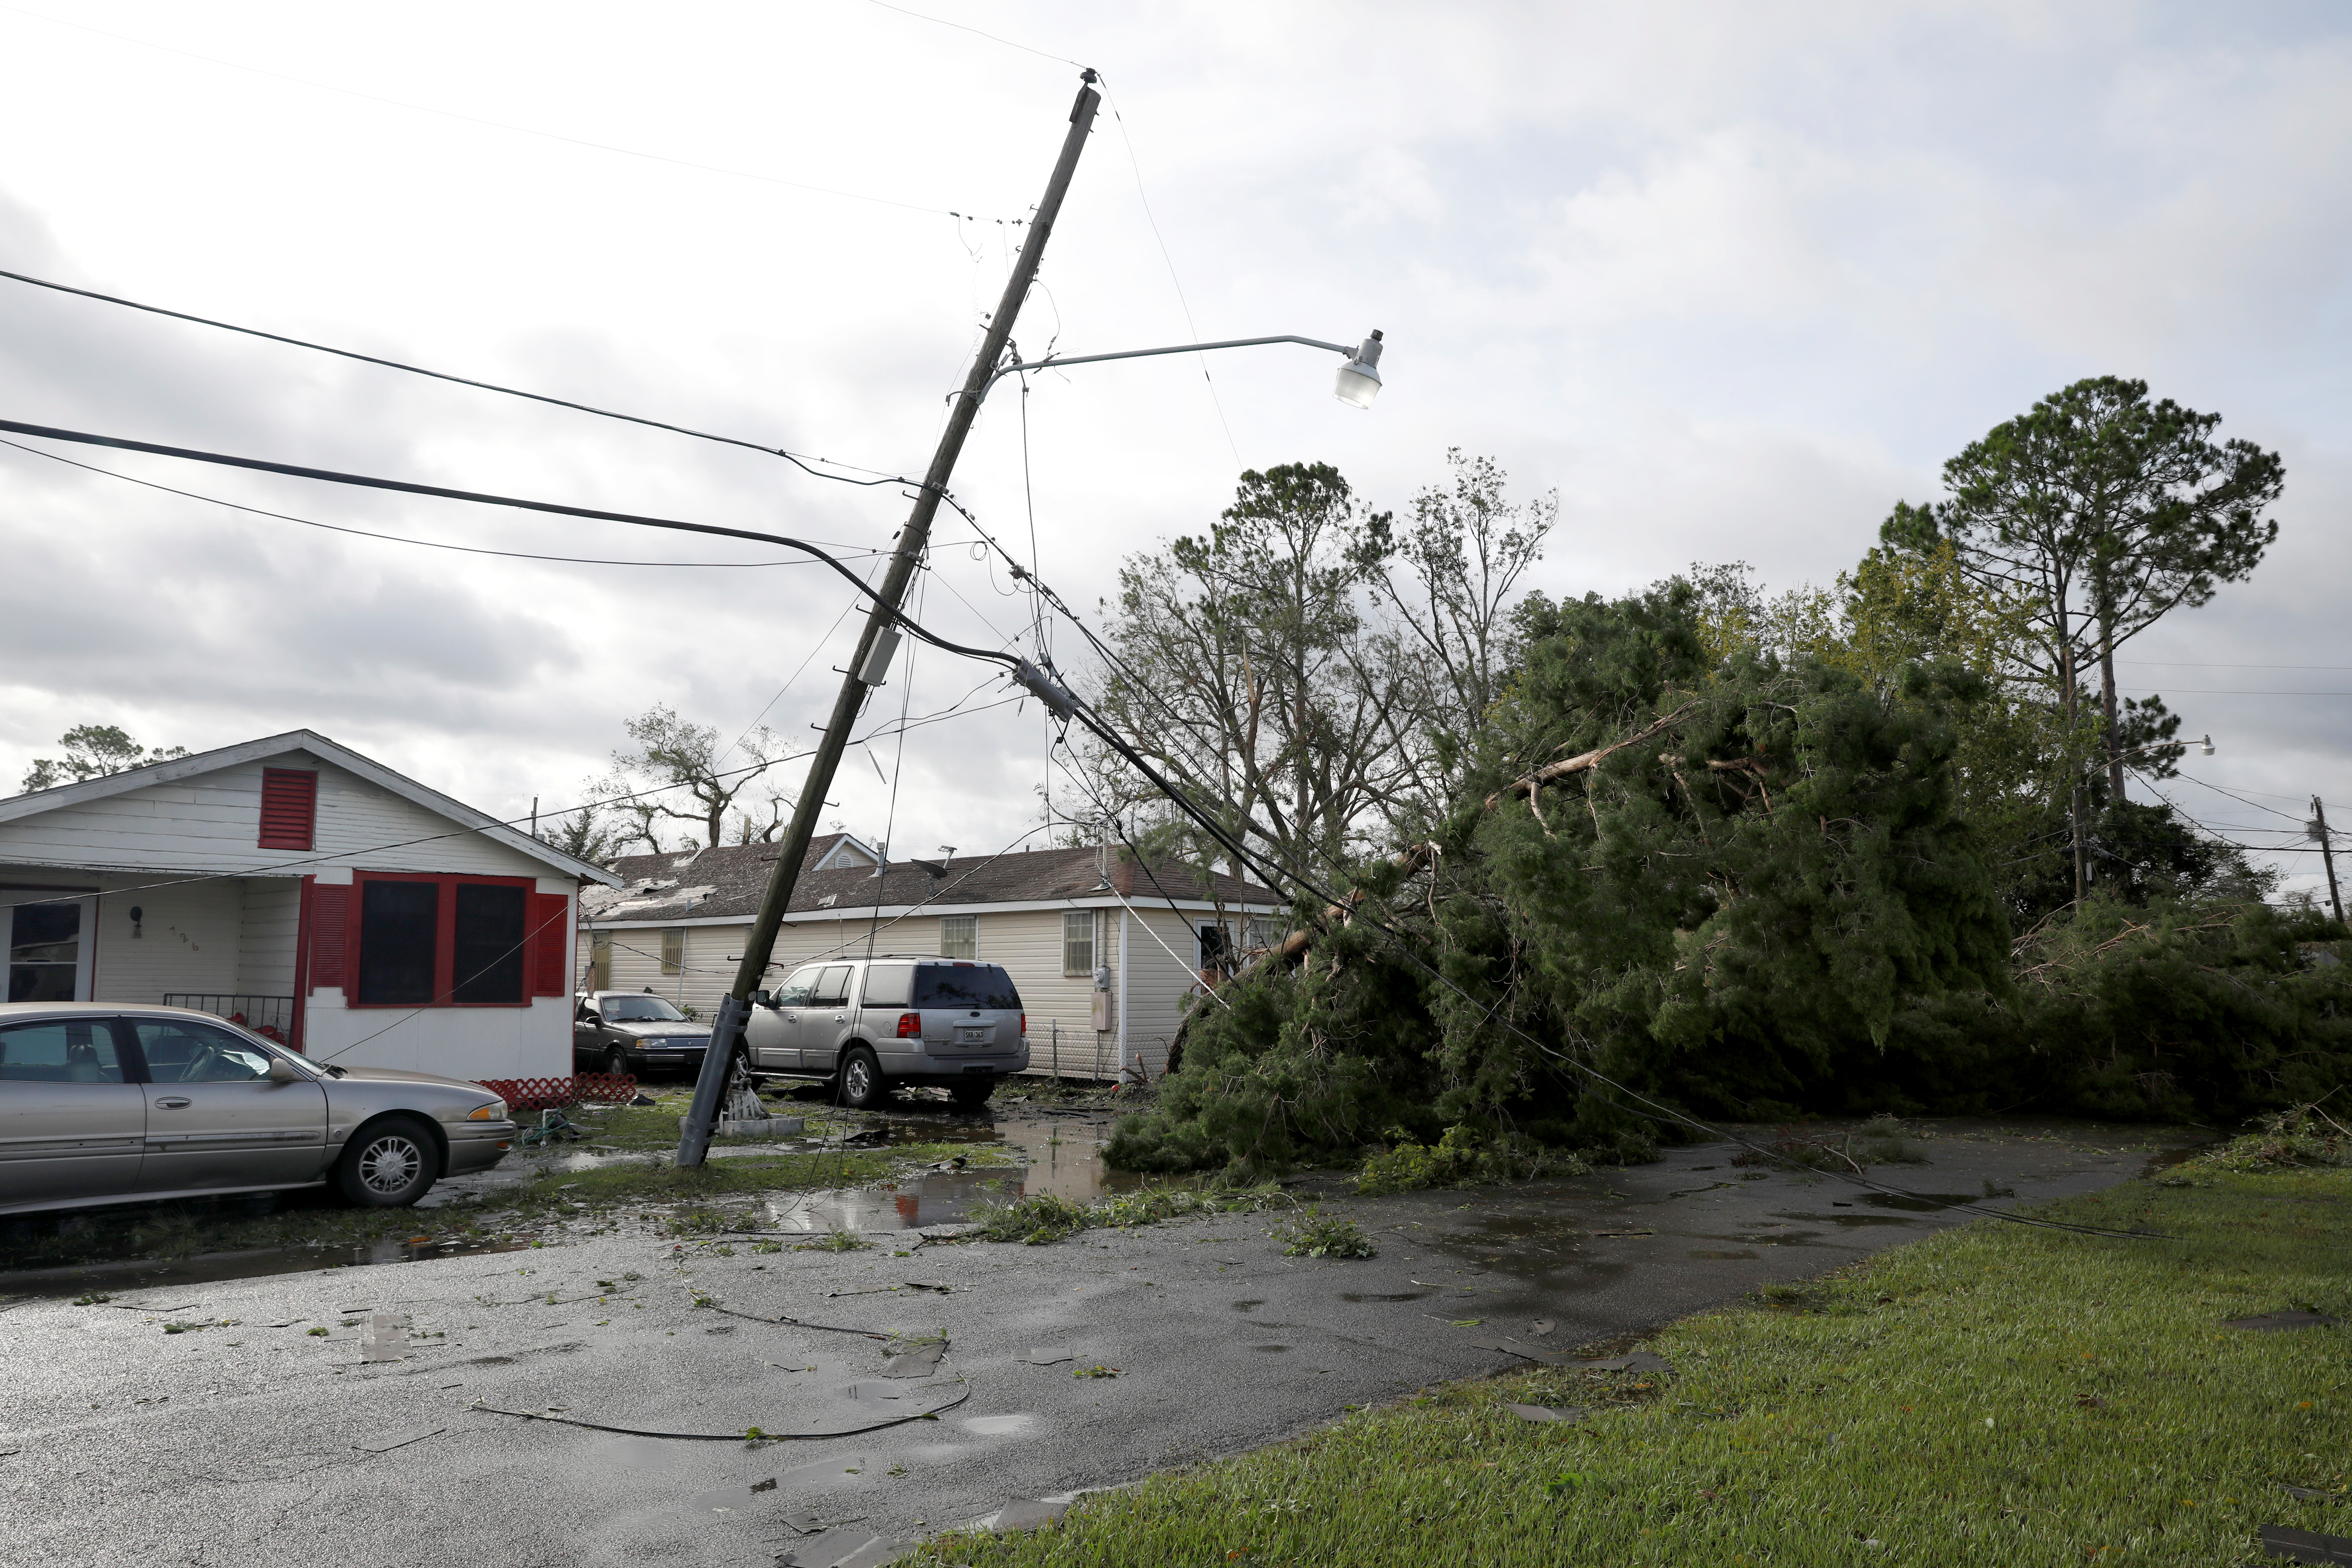 A damaged electric line is pictured after Hurricane Ida made landfall in Louisiana, in Kenner, Louisiana, U.S. August 30, 2021. REUTERS/Marco Bello